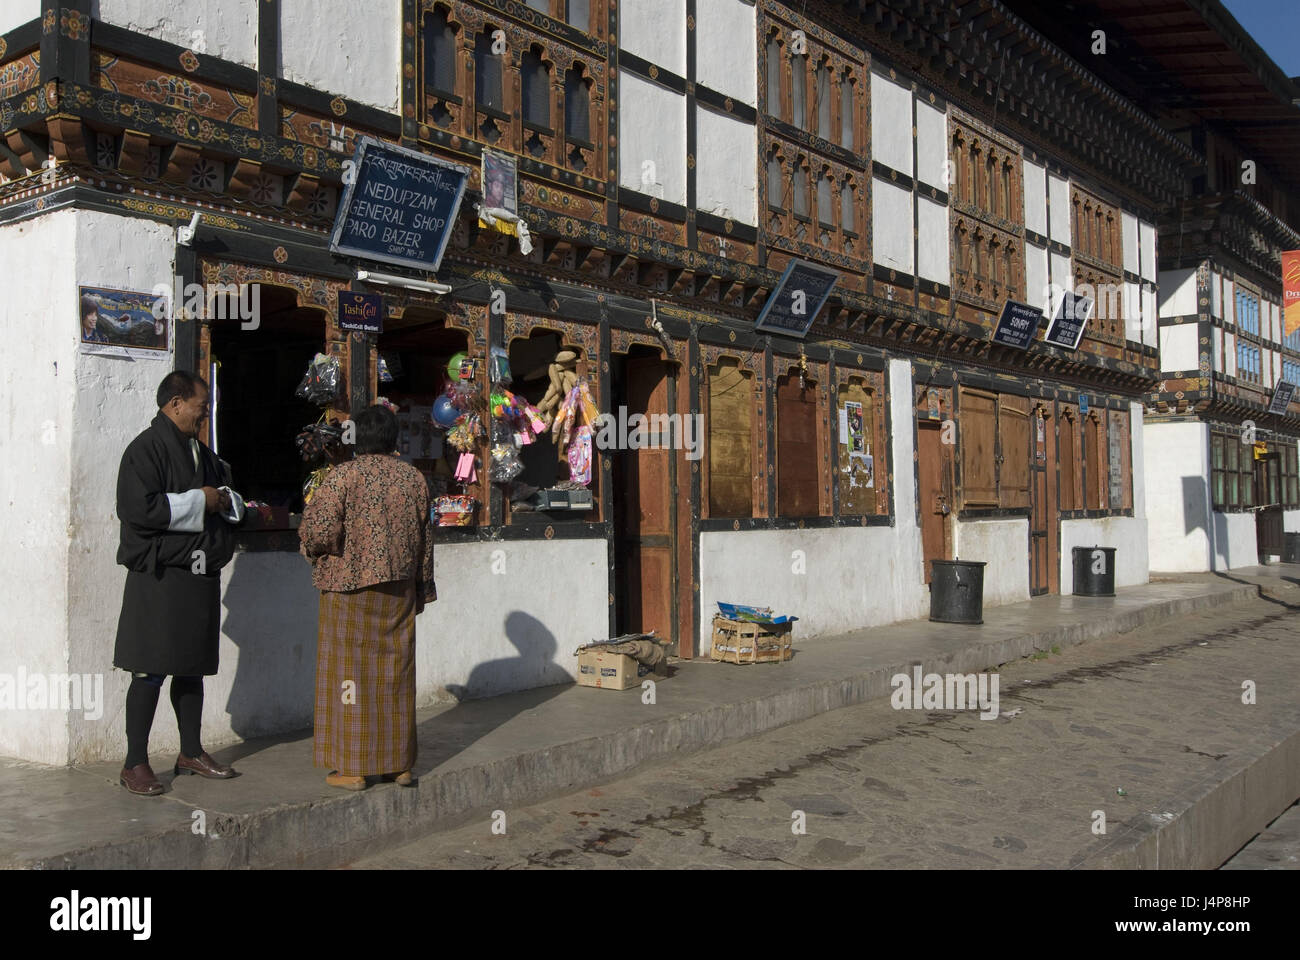 People, entertainment, loading, Paro, Bhutan, no model release, - Stock Image